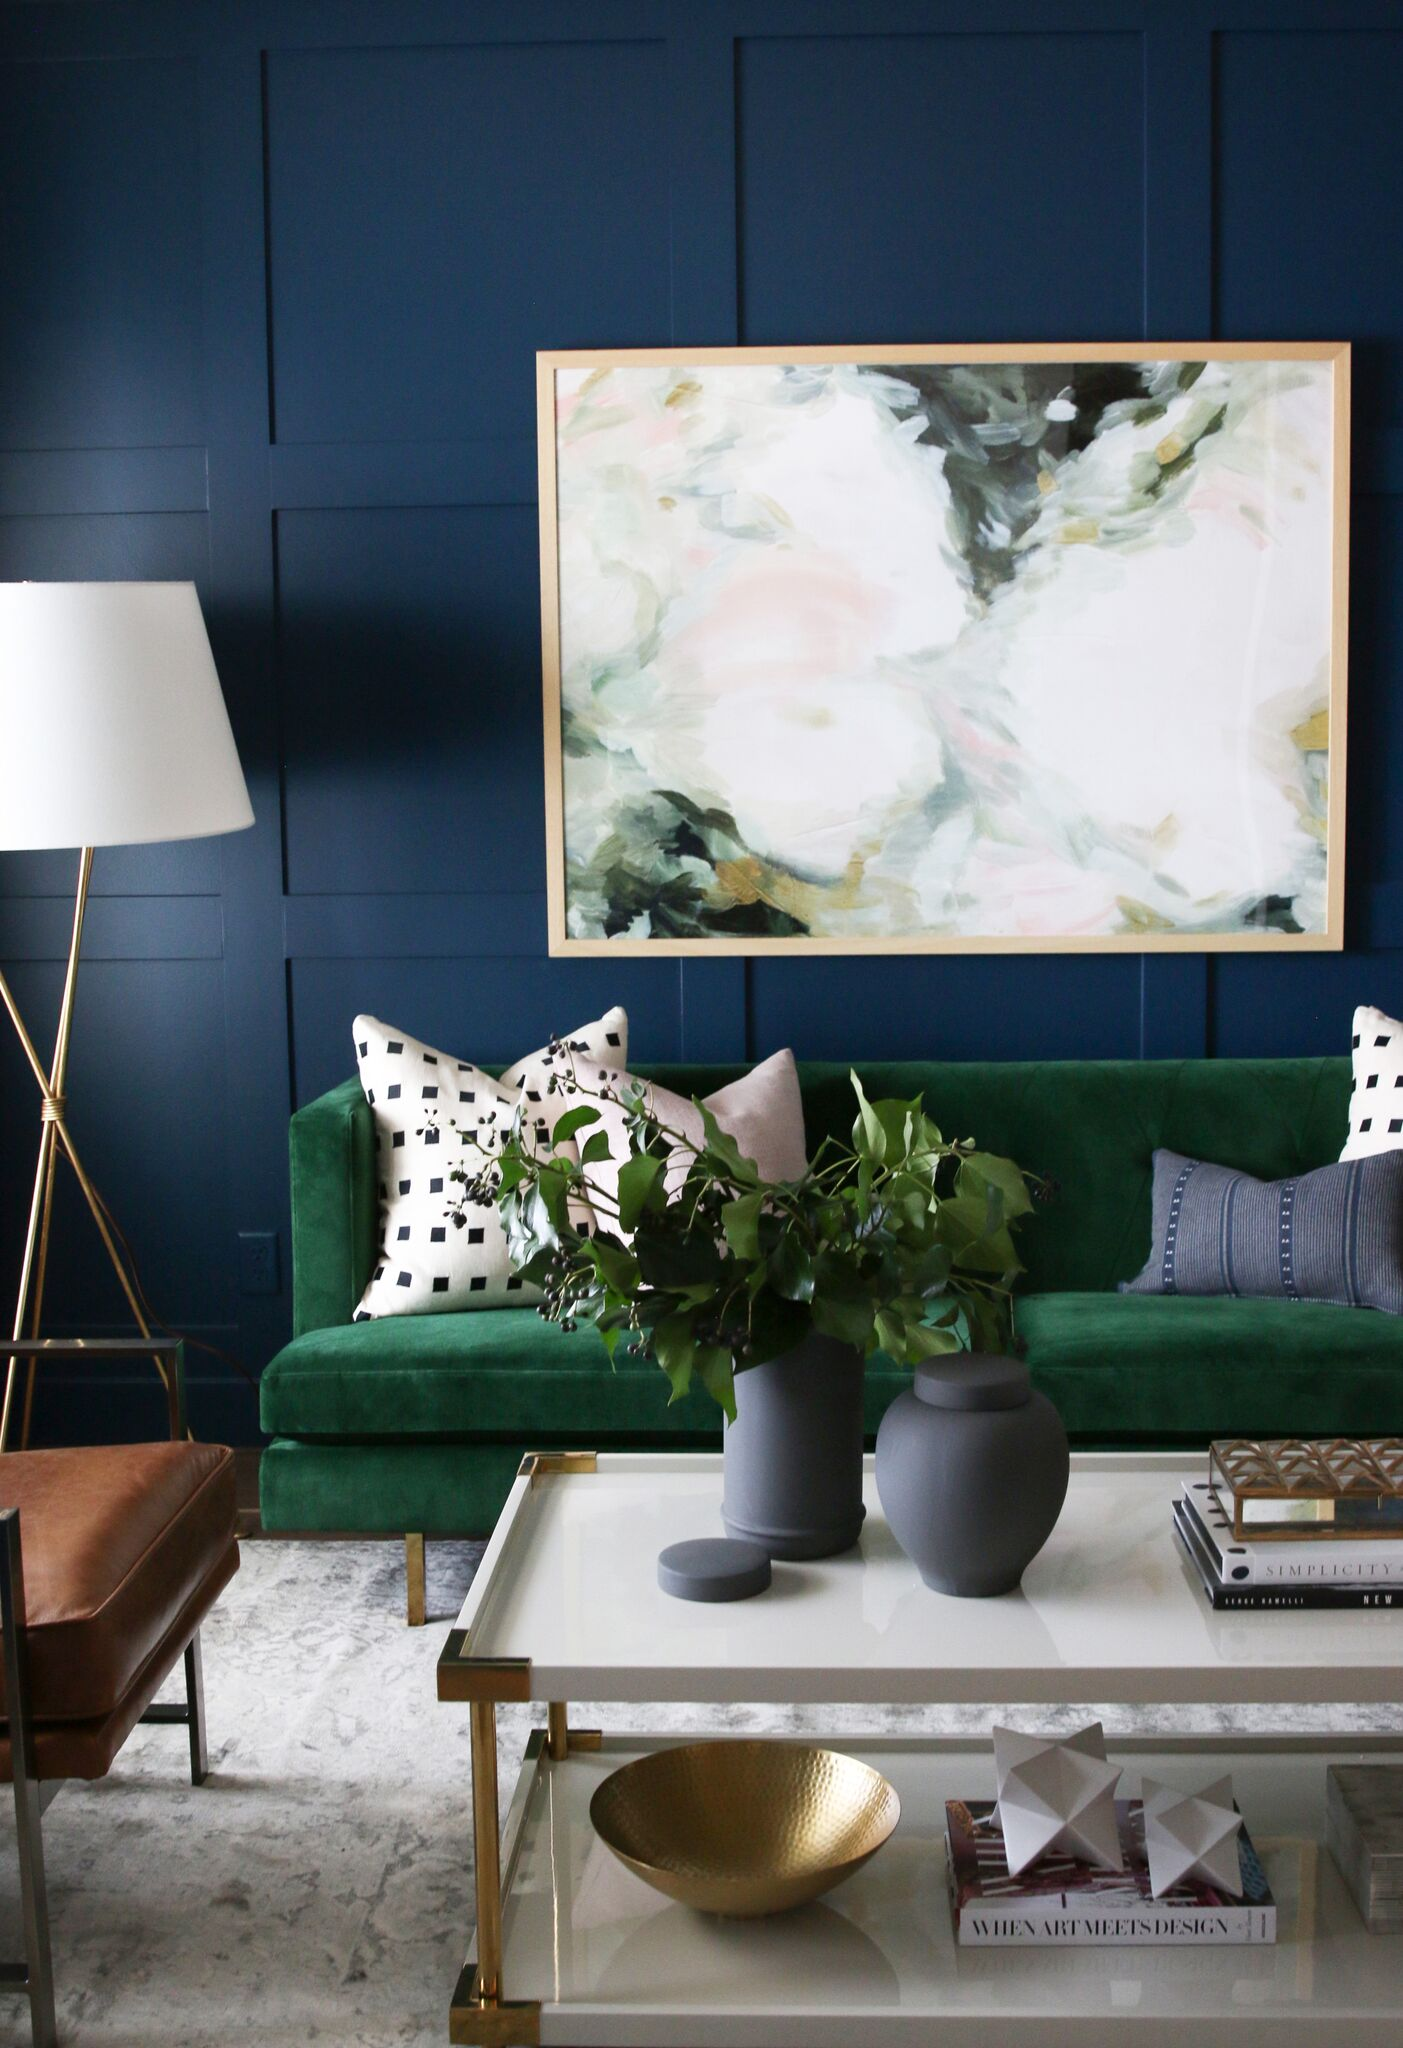 living room outlet mid century modern chairs for formal sitting webisode it s a deep blue with hint of green that moody and romantic we painted from the baseboard to ceiling even covers